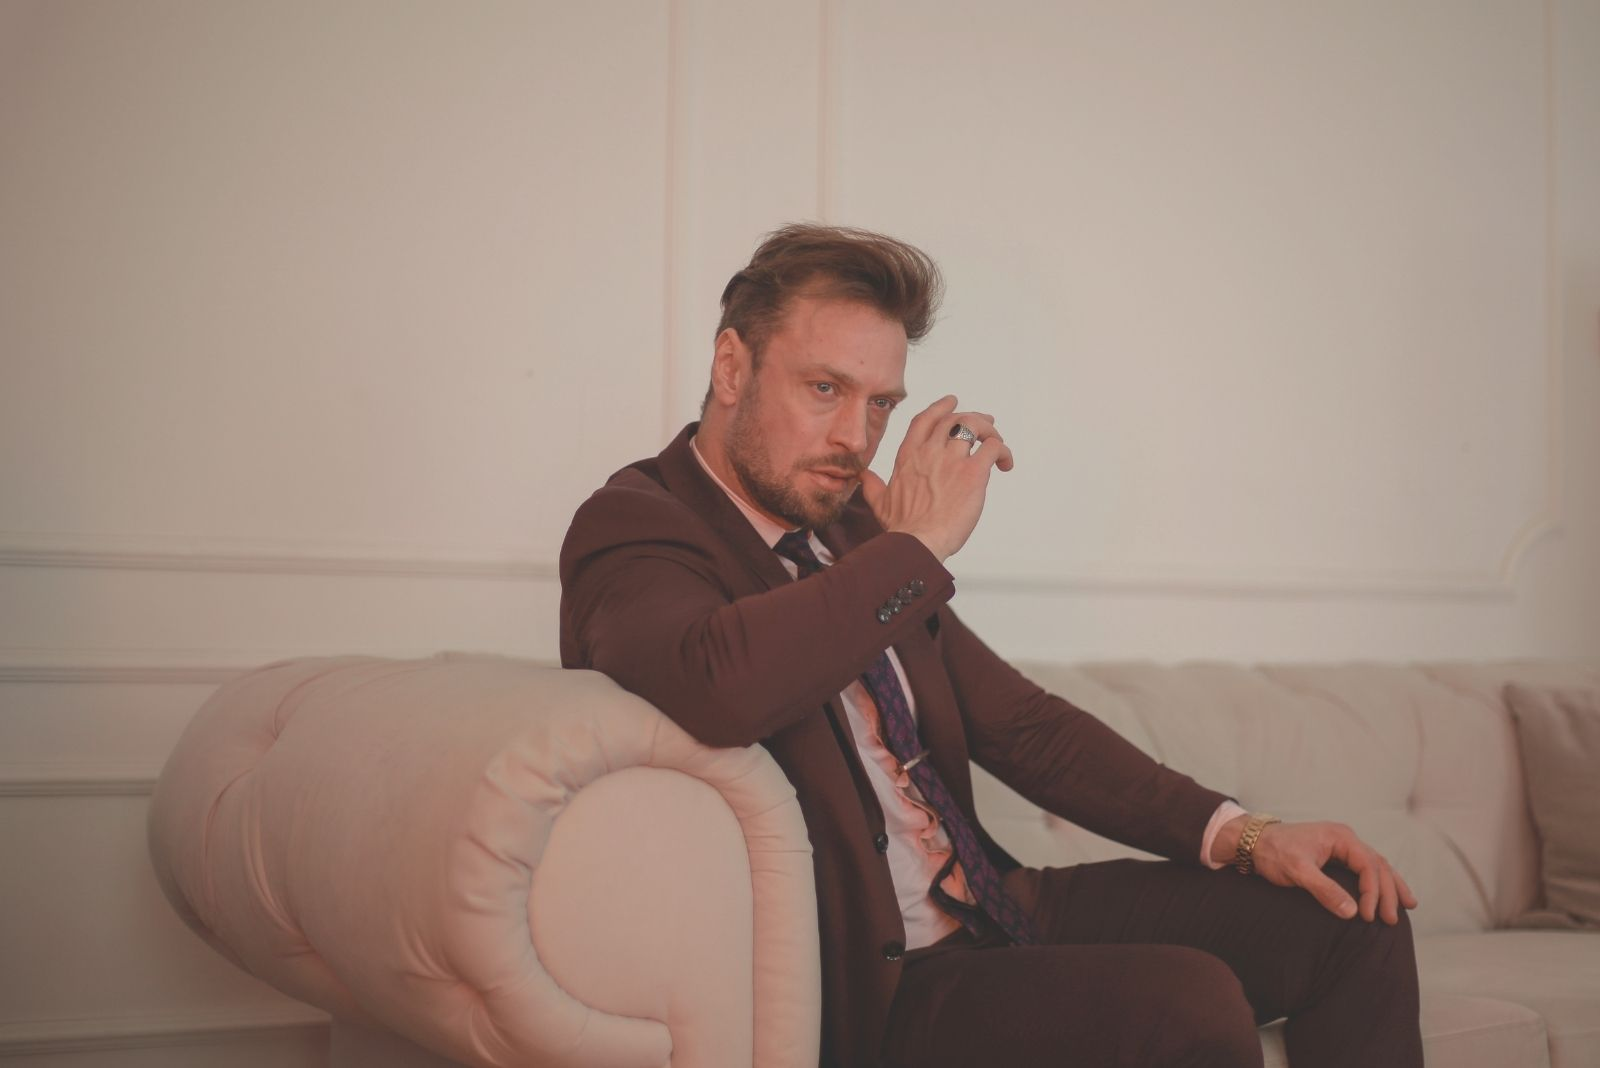 pensive man wearing a suit sitting on the sofa